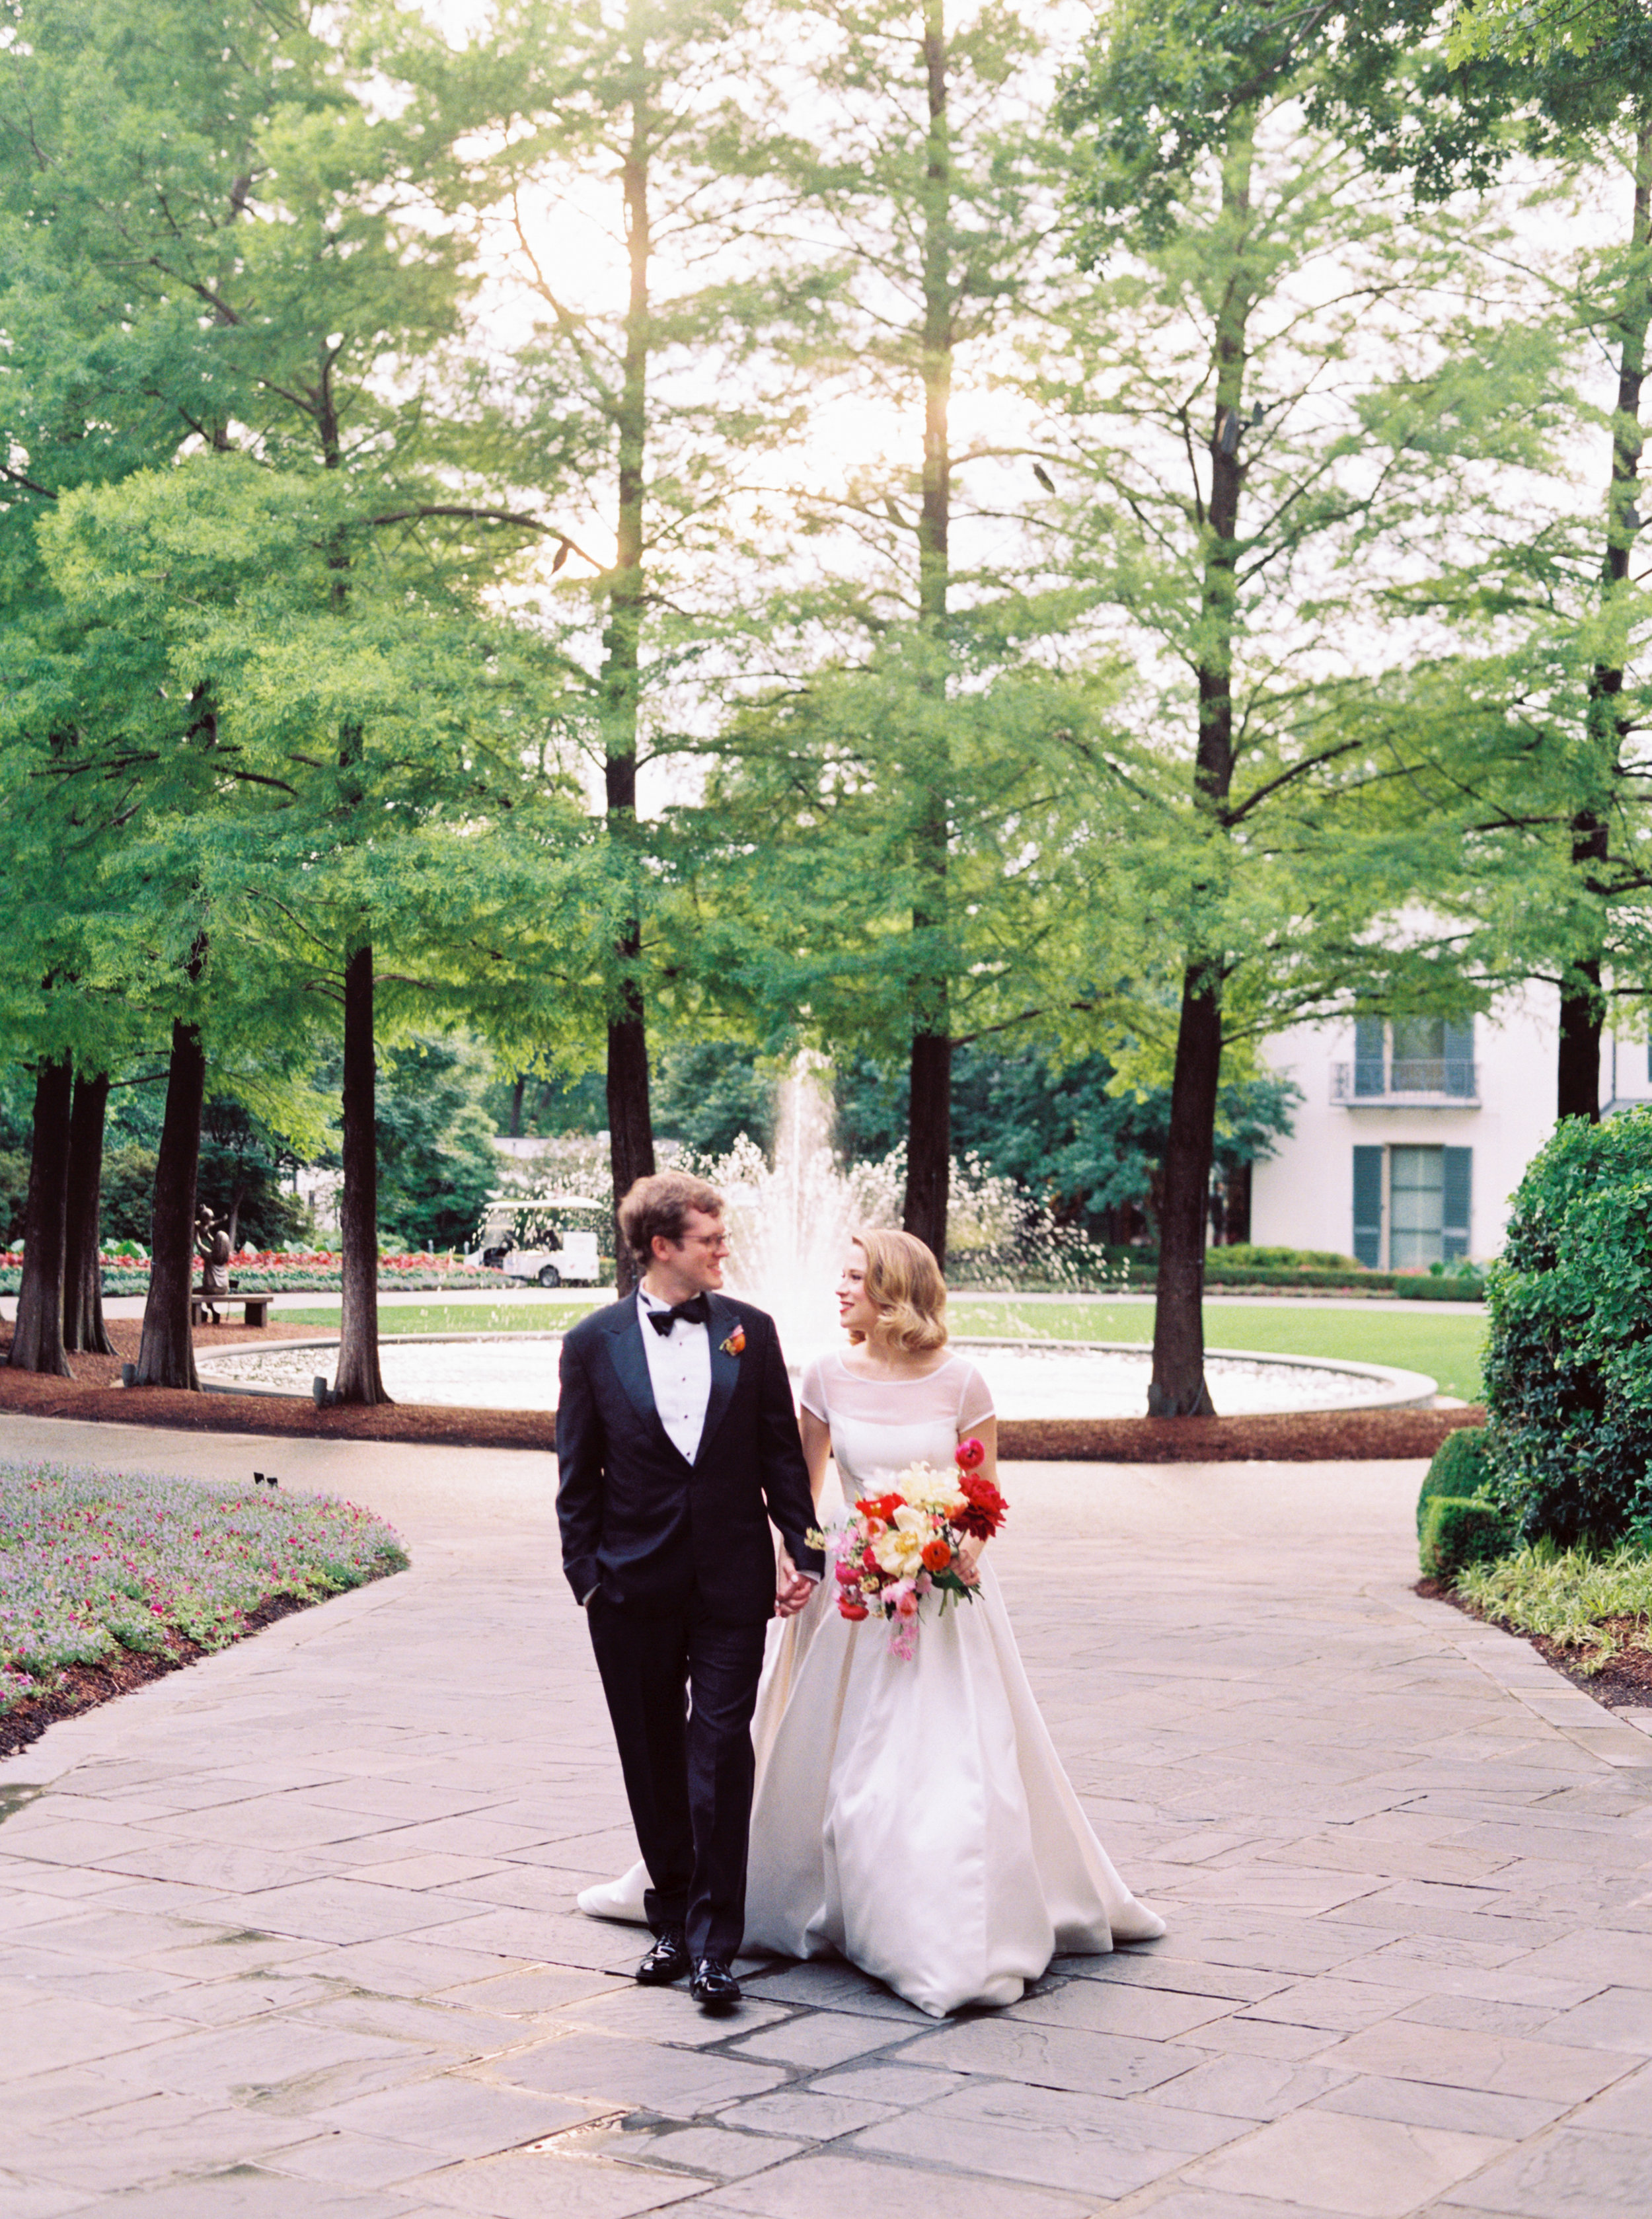 Ana-and-Nick-at-The-Dallas-Arboretum-Ivory-and-Vine.jpg